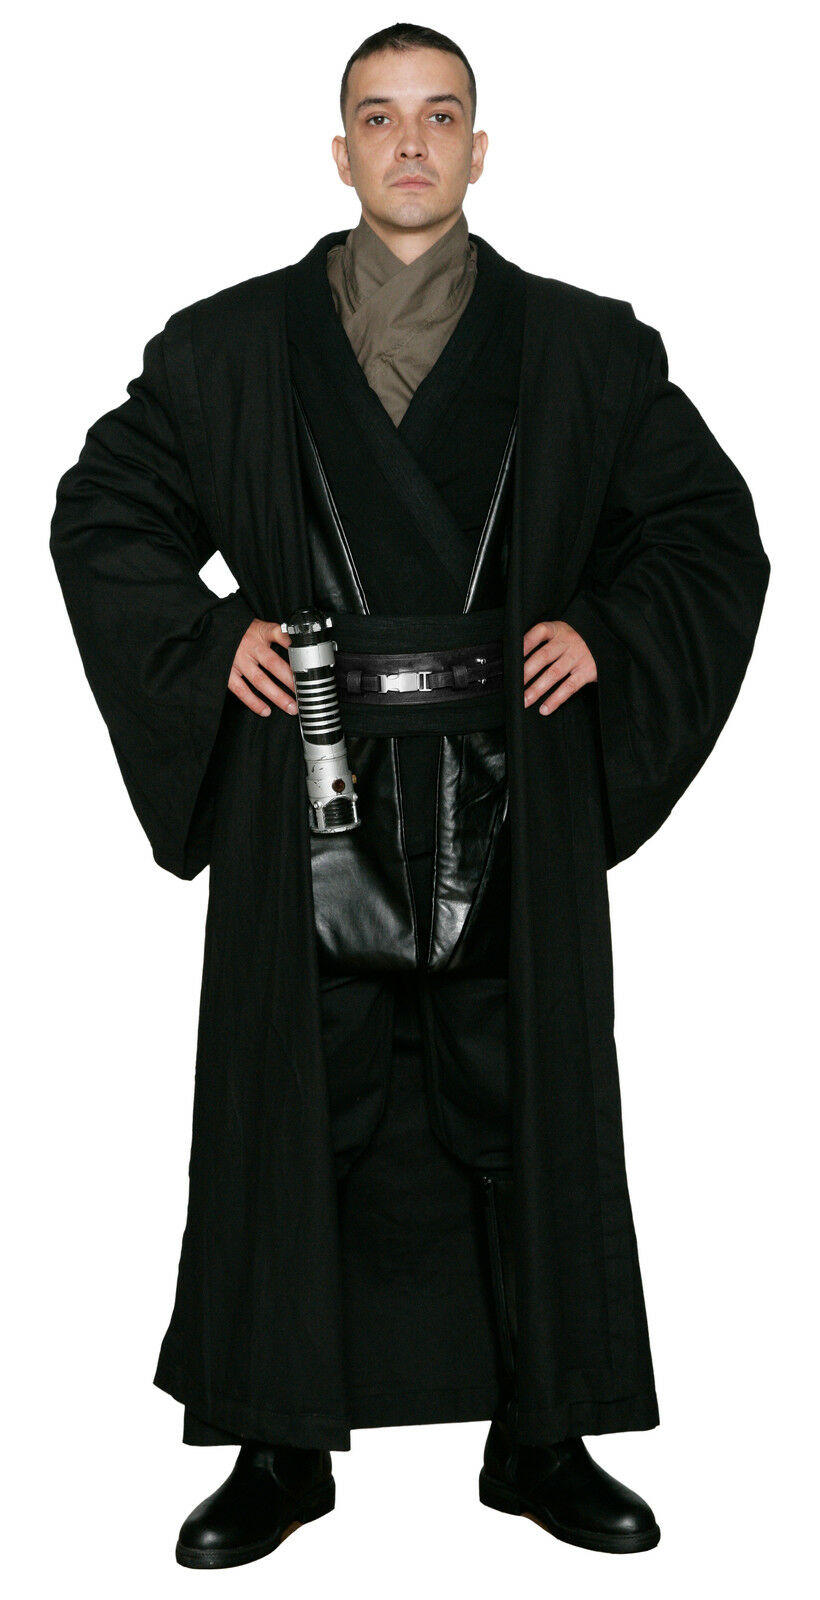 Star Wars Anakin Skywalker Costume and Robe in Black Film Set Quality from USA